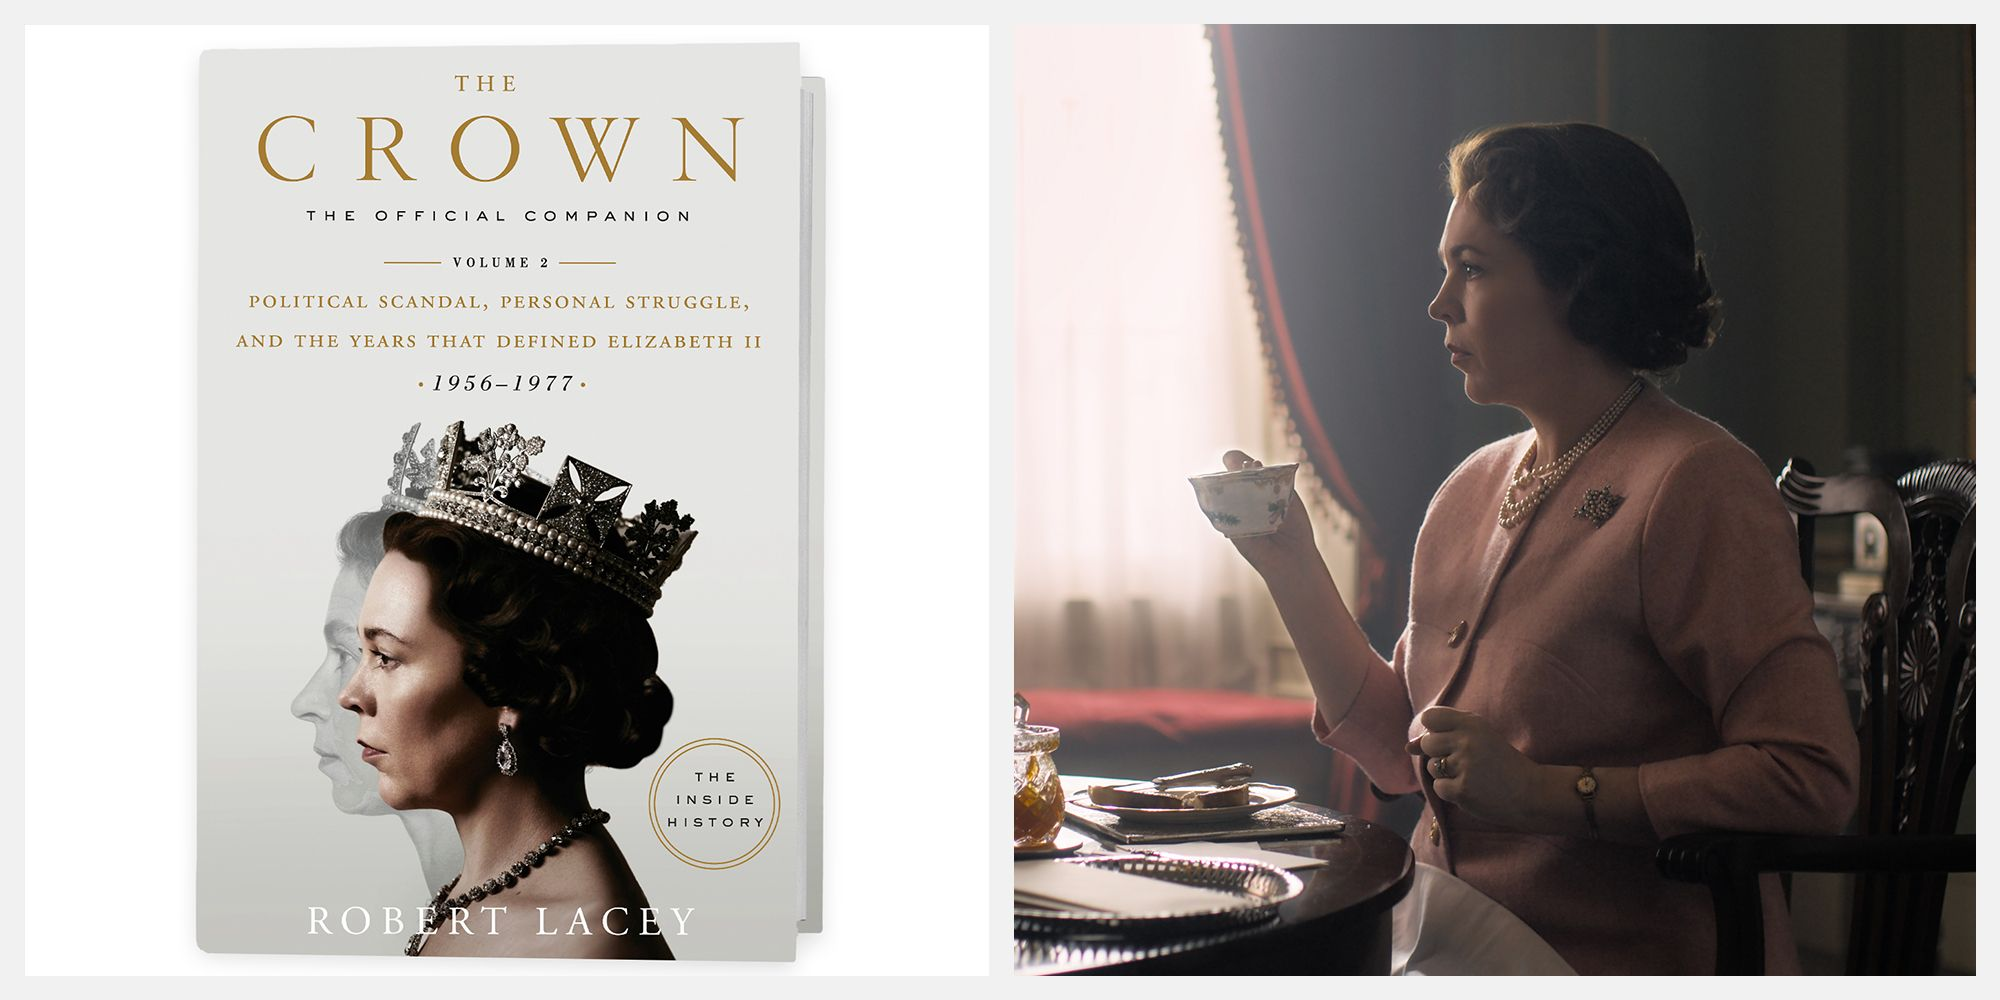 An Exclusive First Look at the Official Companion Book for The Crown's Third Season